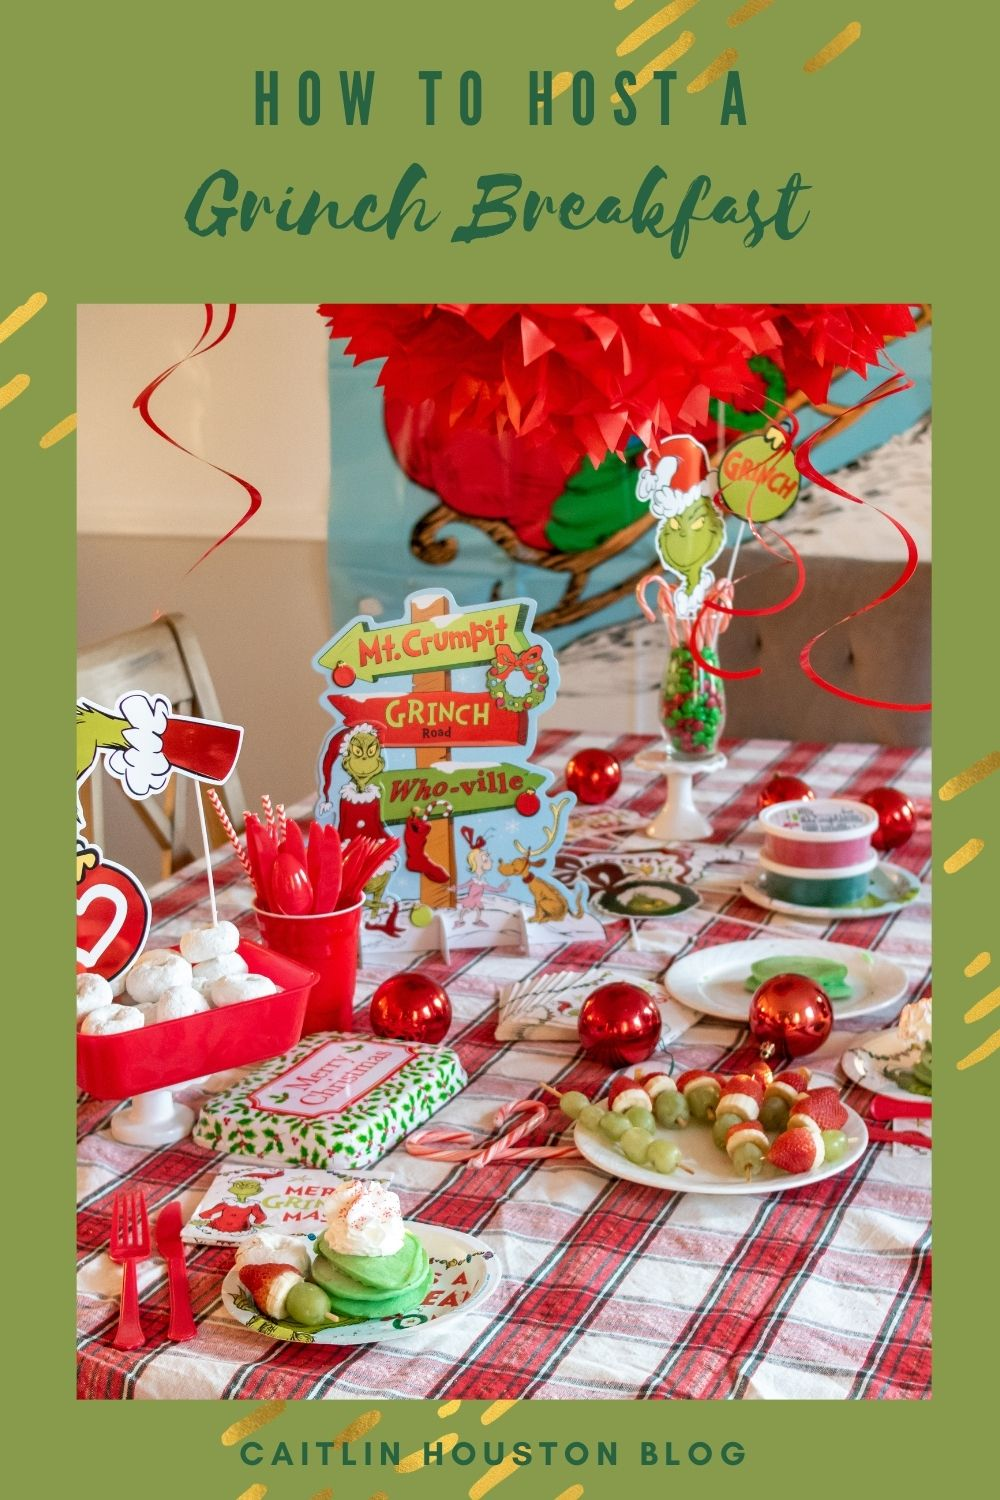 How to Host a Grinch Breakfast Party with Grinch Themed Foods, Grinch Decorations, and more.